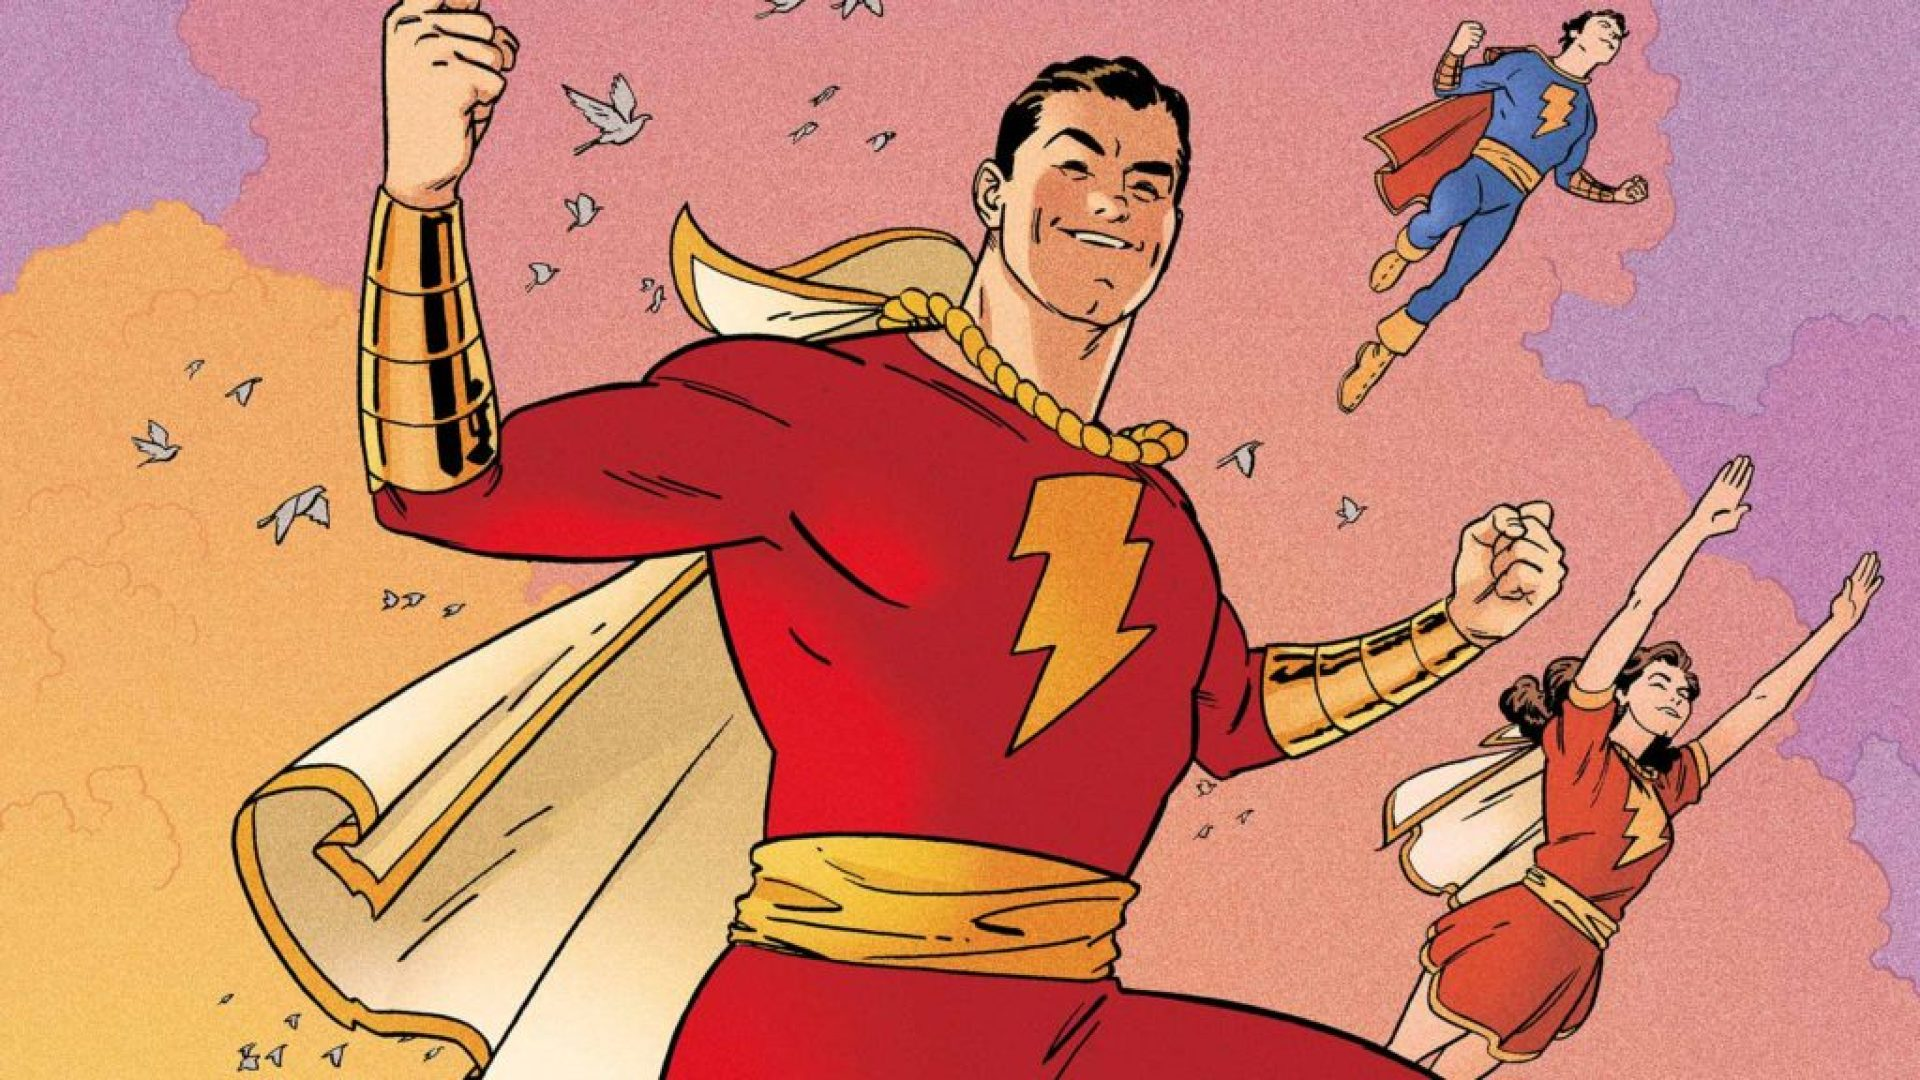 Shazam aka Captain Marvel in DC Comics